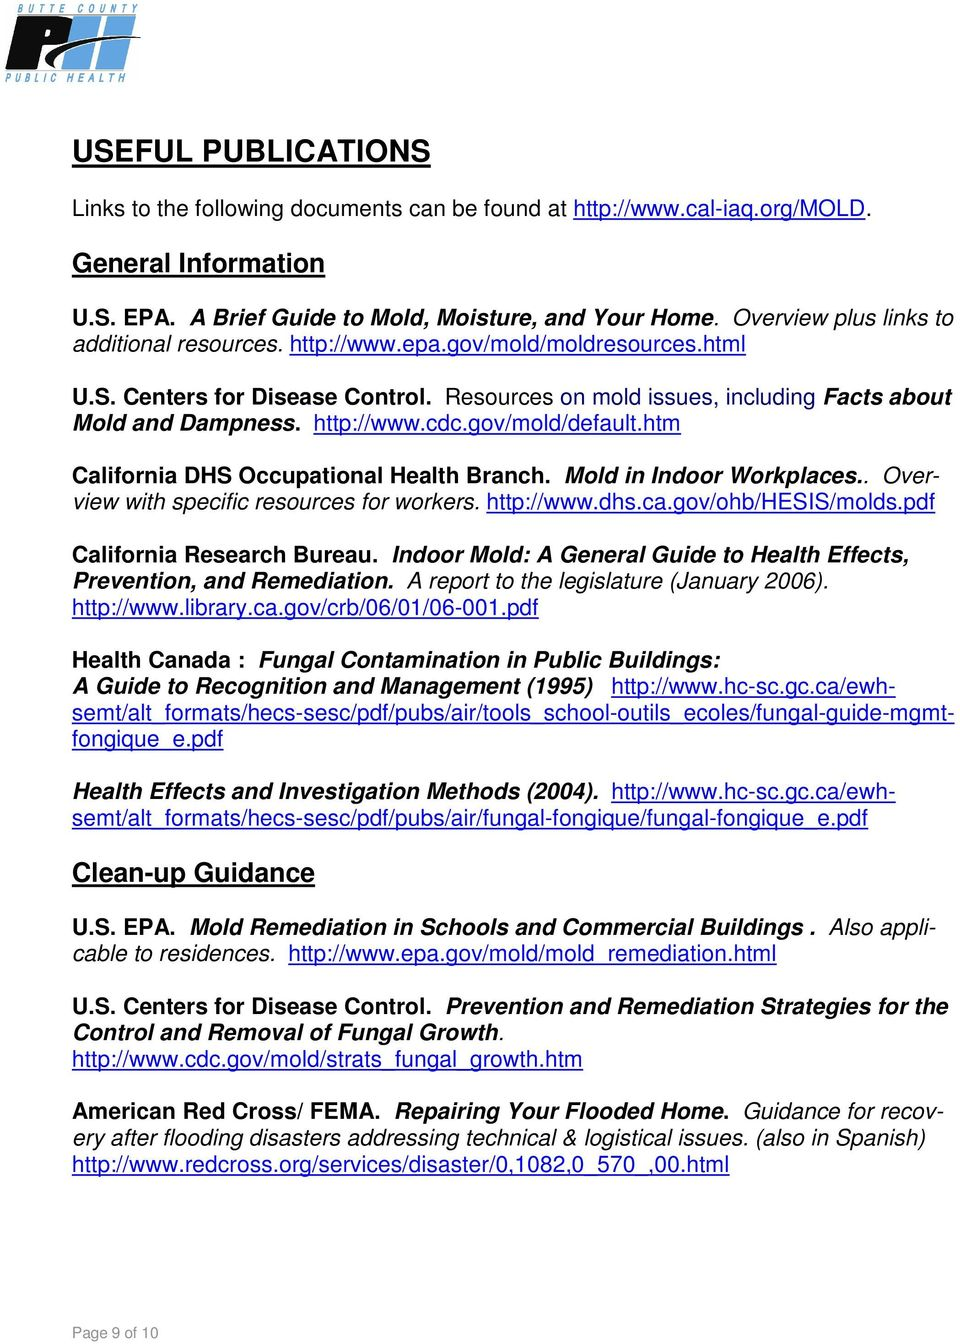 gov/mold/default.htm California DHS Occupational Health Branch. Mold in Indoor Workplaces.. Overview with specific resources for workers. http://www.dhs.ca.gov/ohb/hesis/molds.